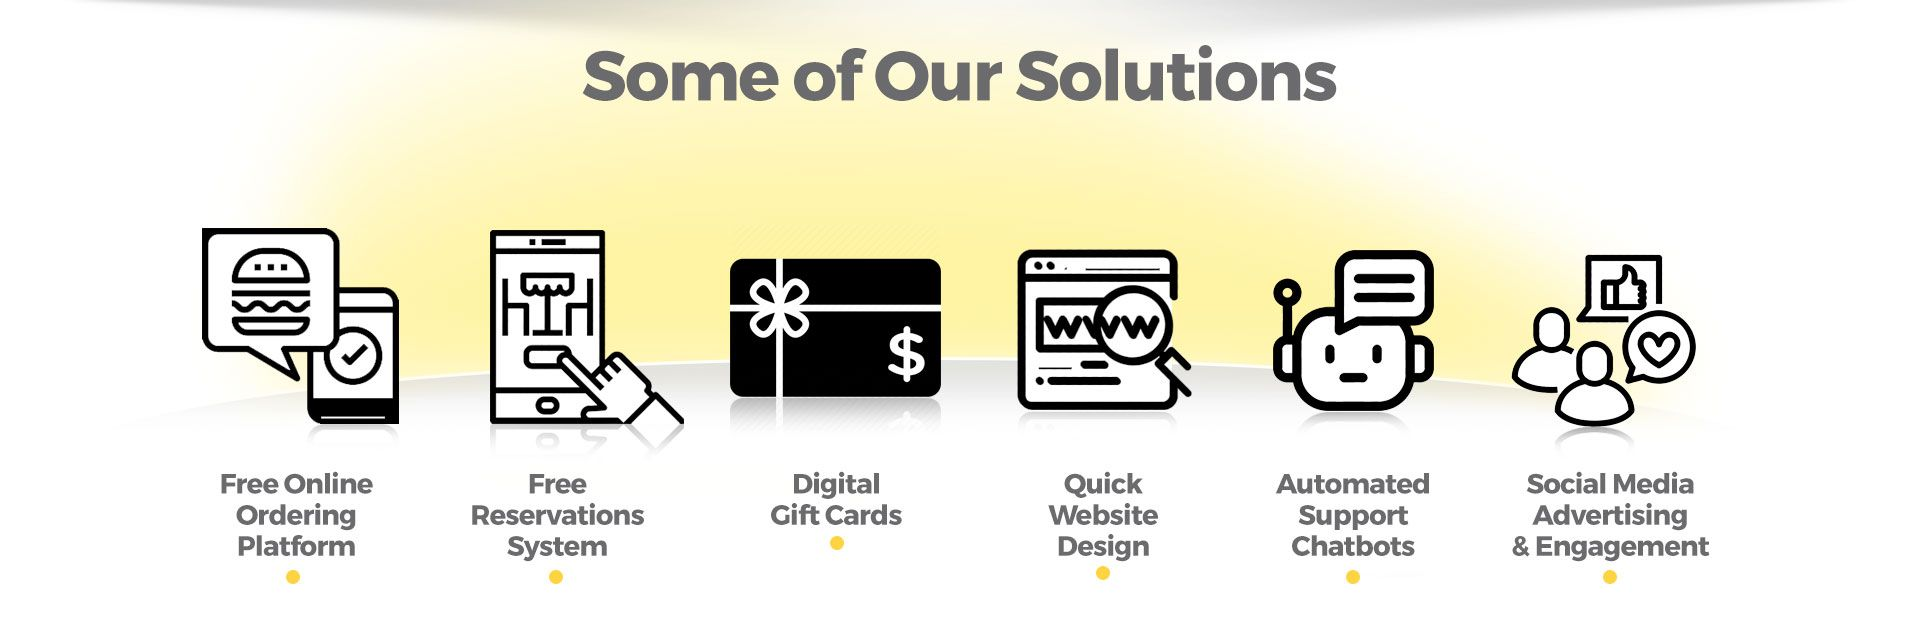 Some of our solutions